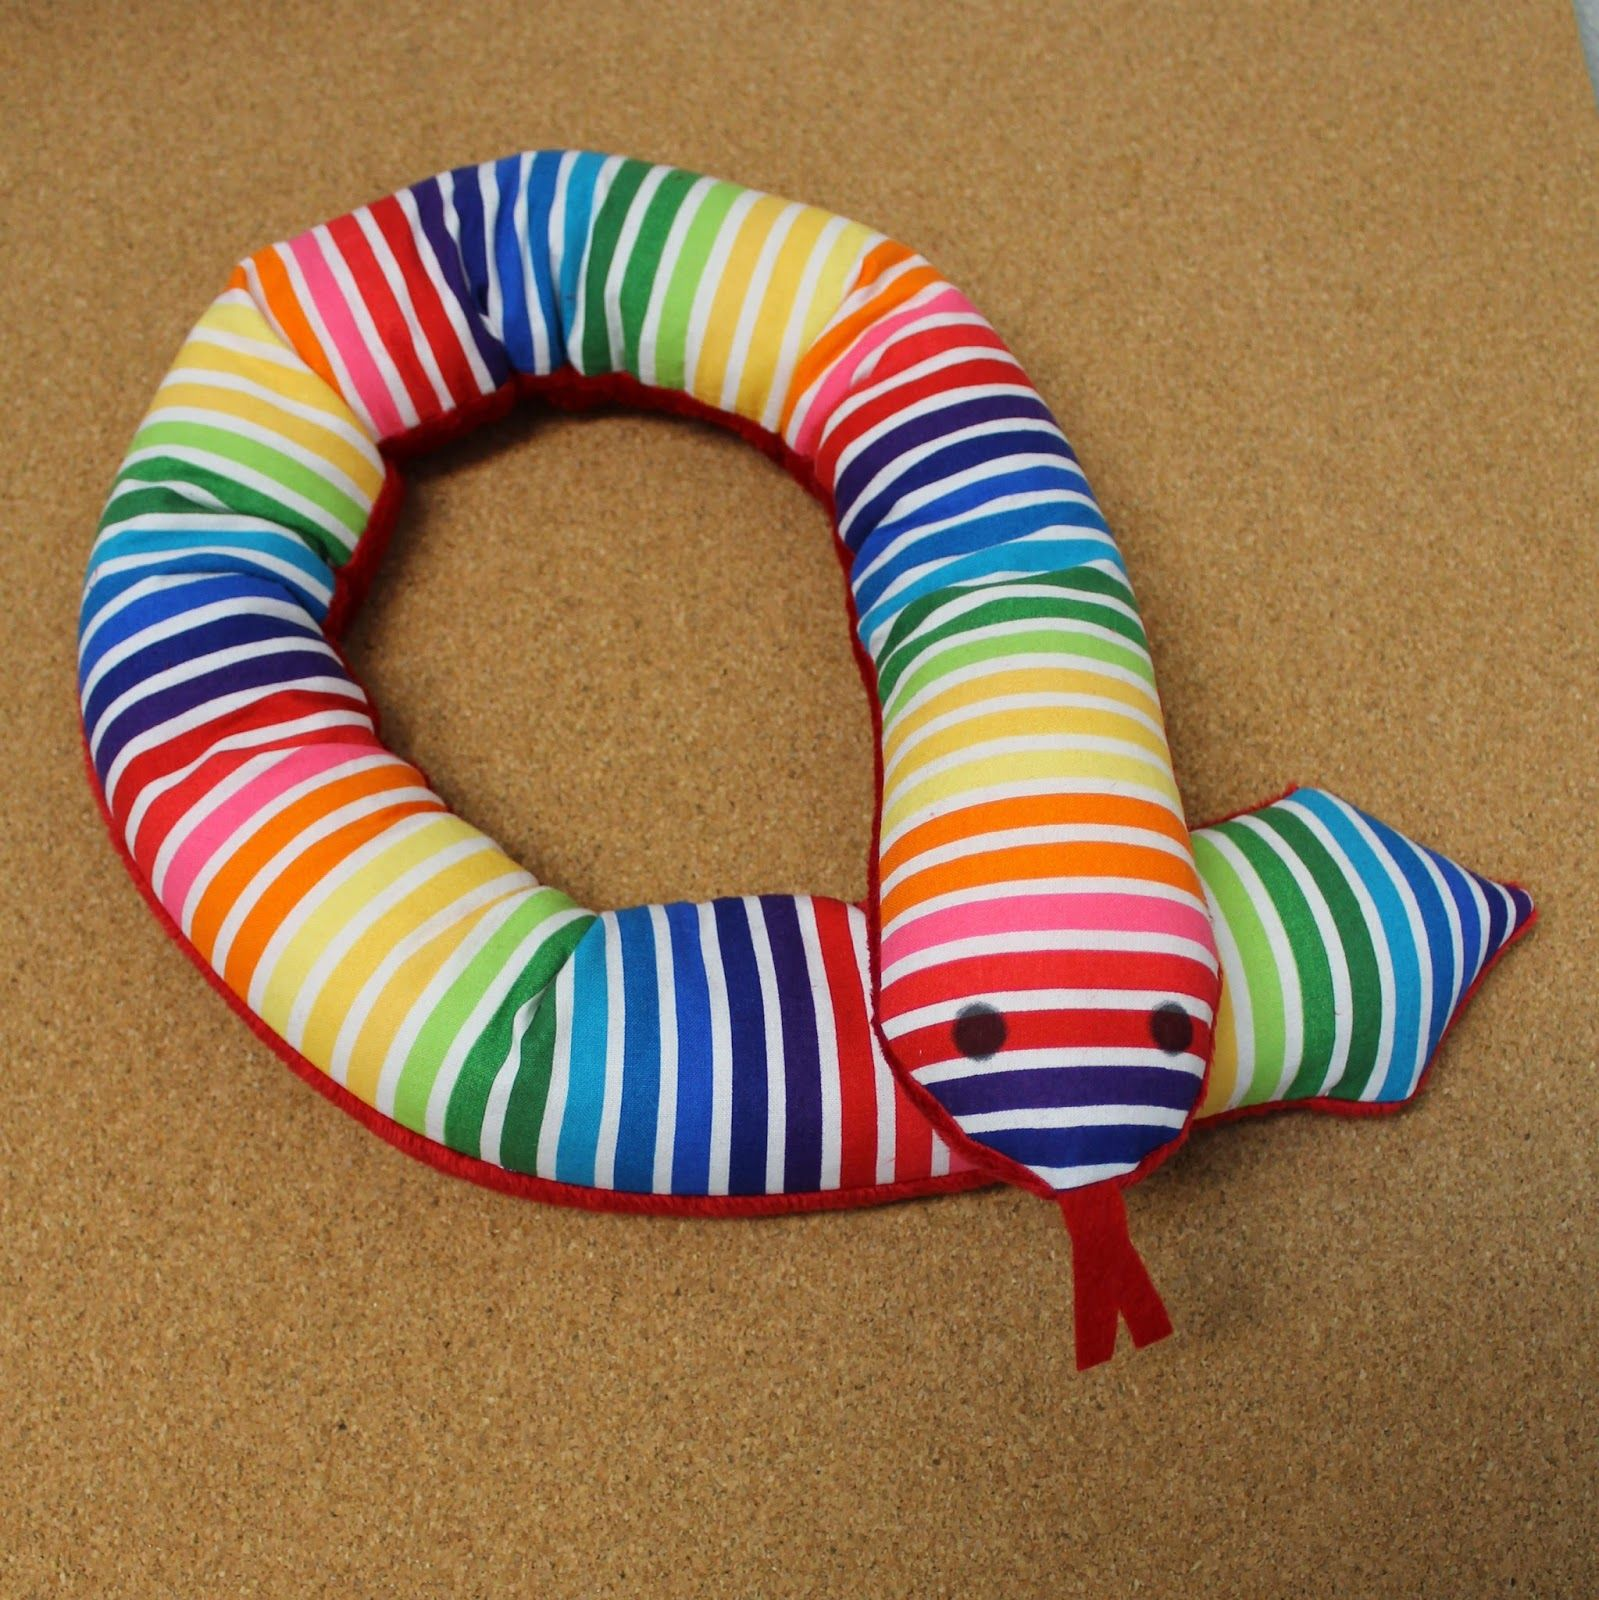 Make a weighted sensory snake to give fort to a child including